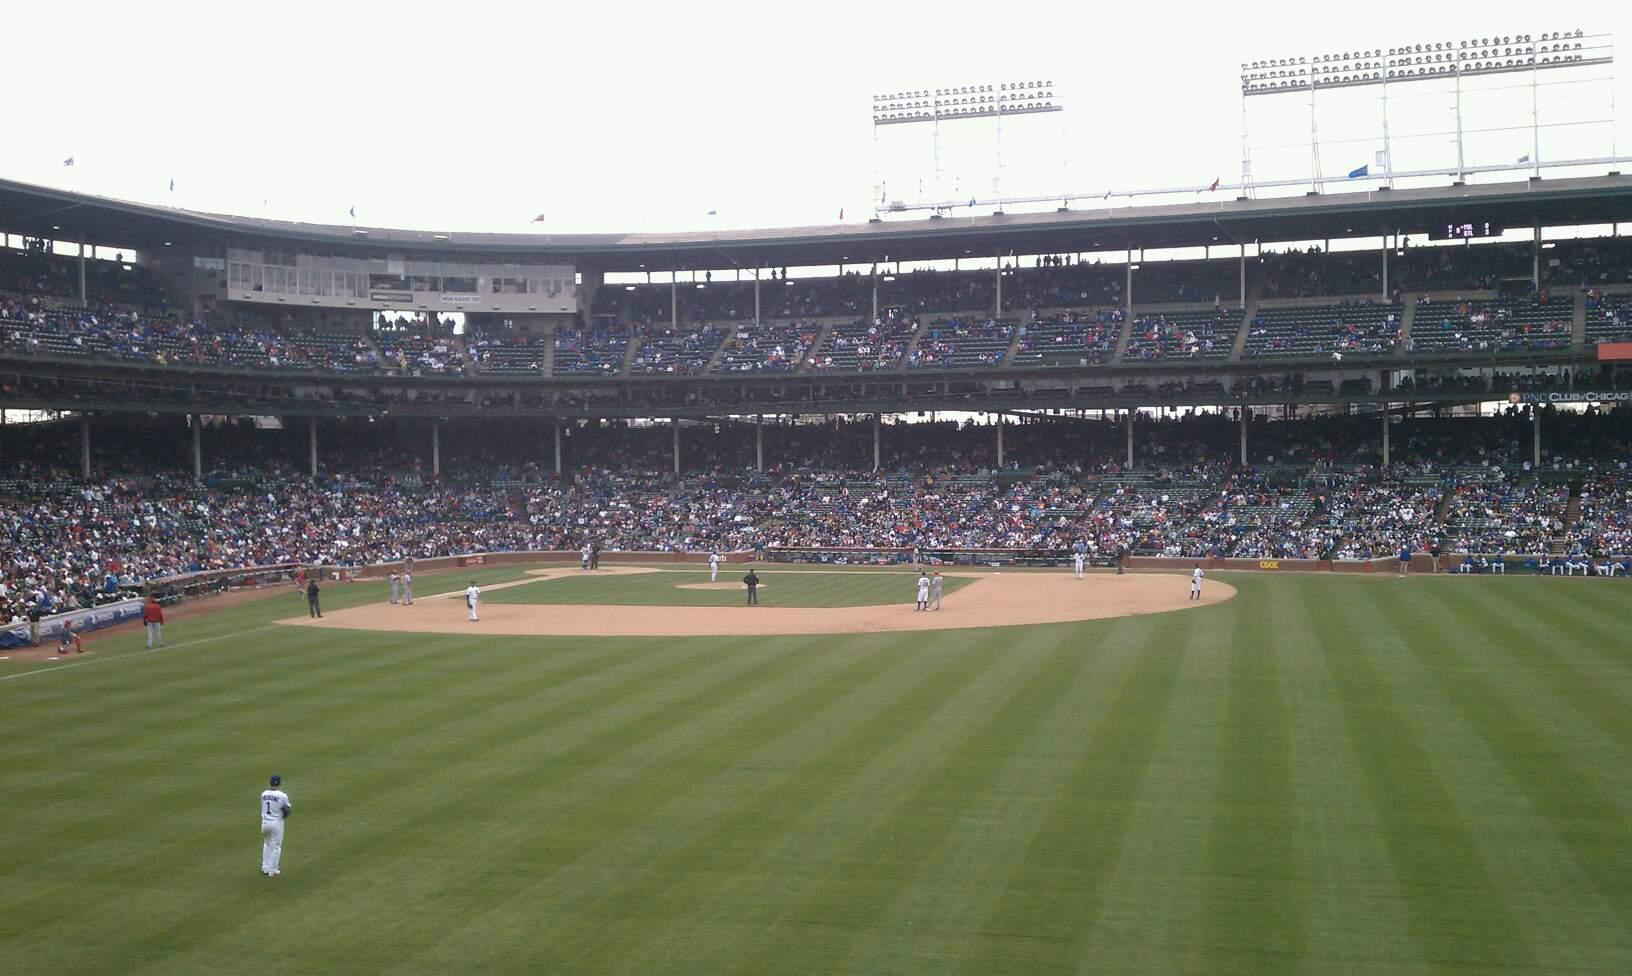 Wrigley Field Section 515 Row 11 Seat 5